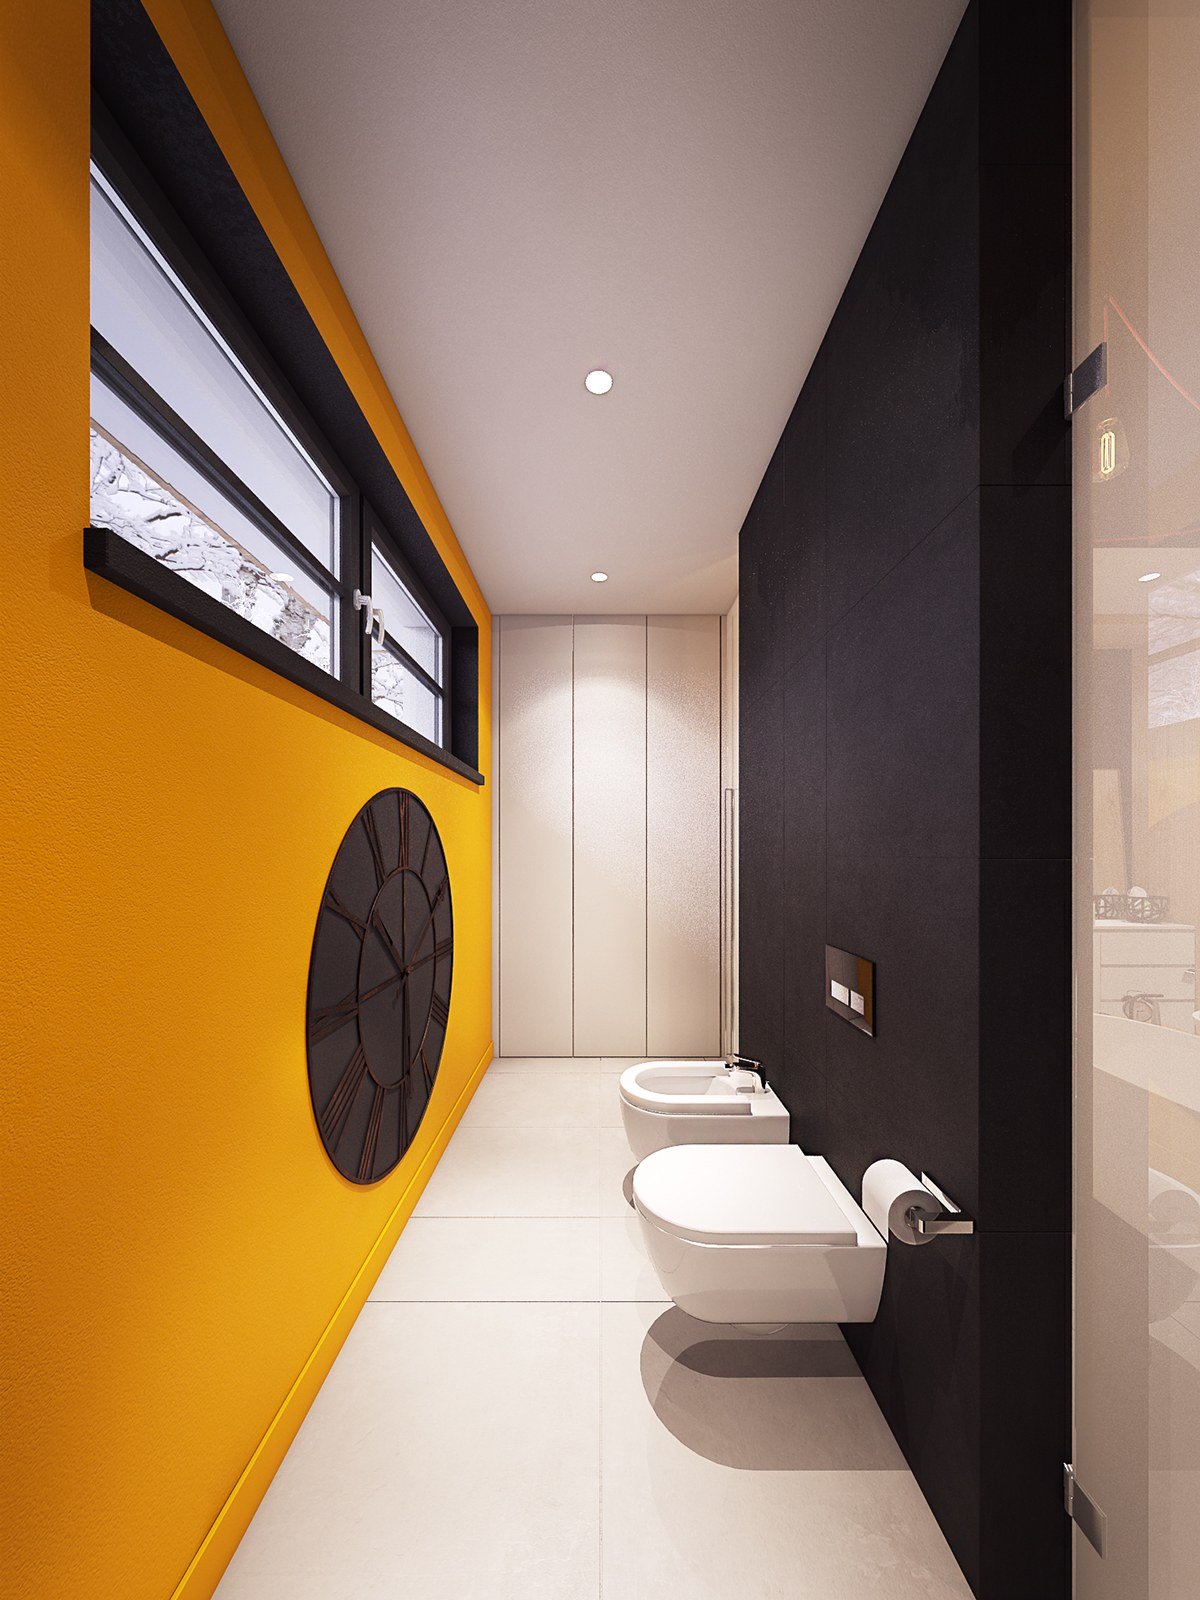 Bath With Bidet - A seductive home with lush colors and double baths